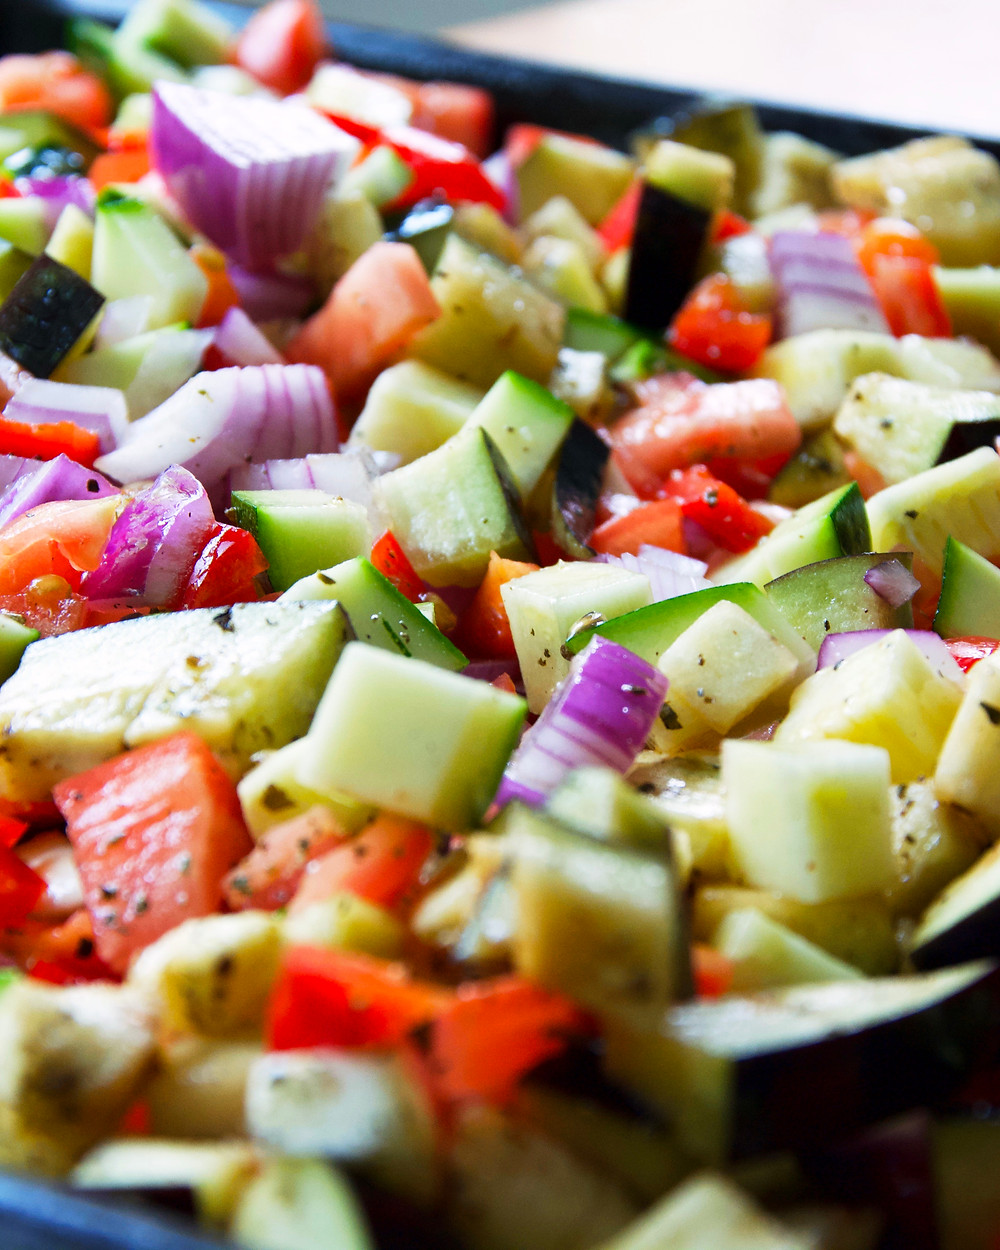 Chopped veggies ready to go in the oven.